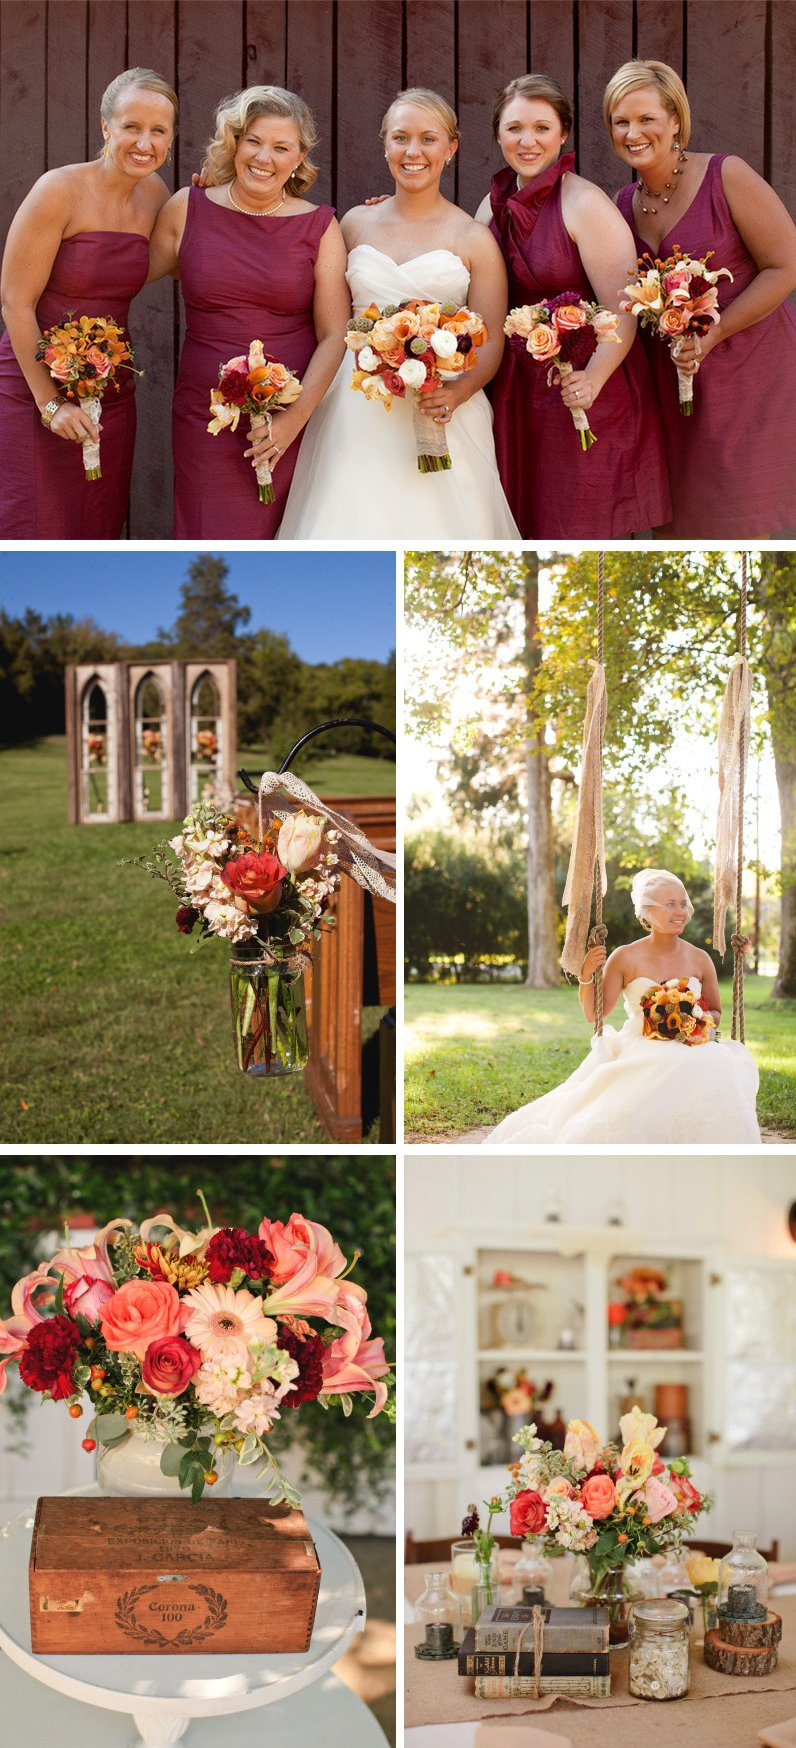 Outdoor-country-western-themed-wedding-colorful-wedding-flowers-centerpieces-maroon-bridesmaids-dresses.full